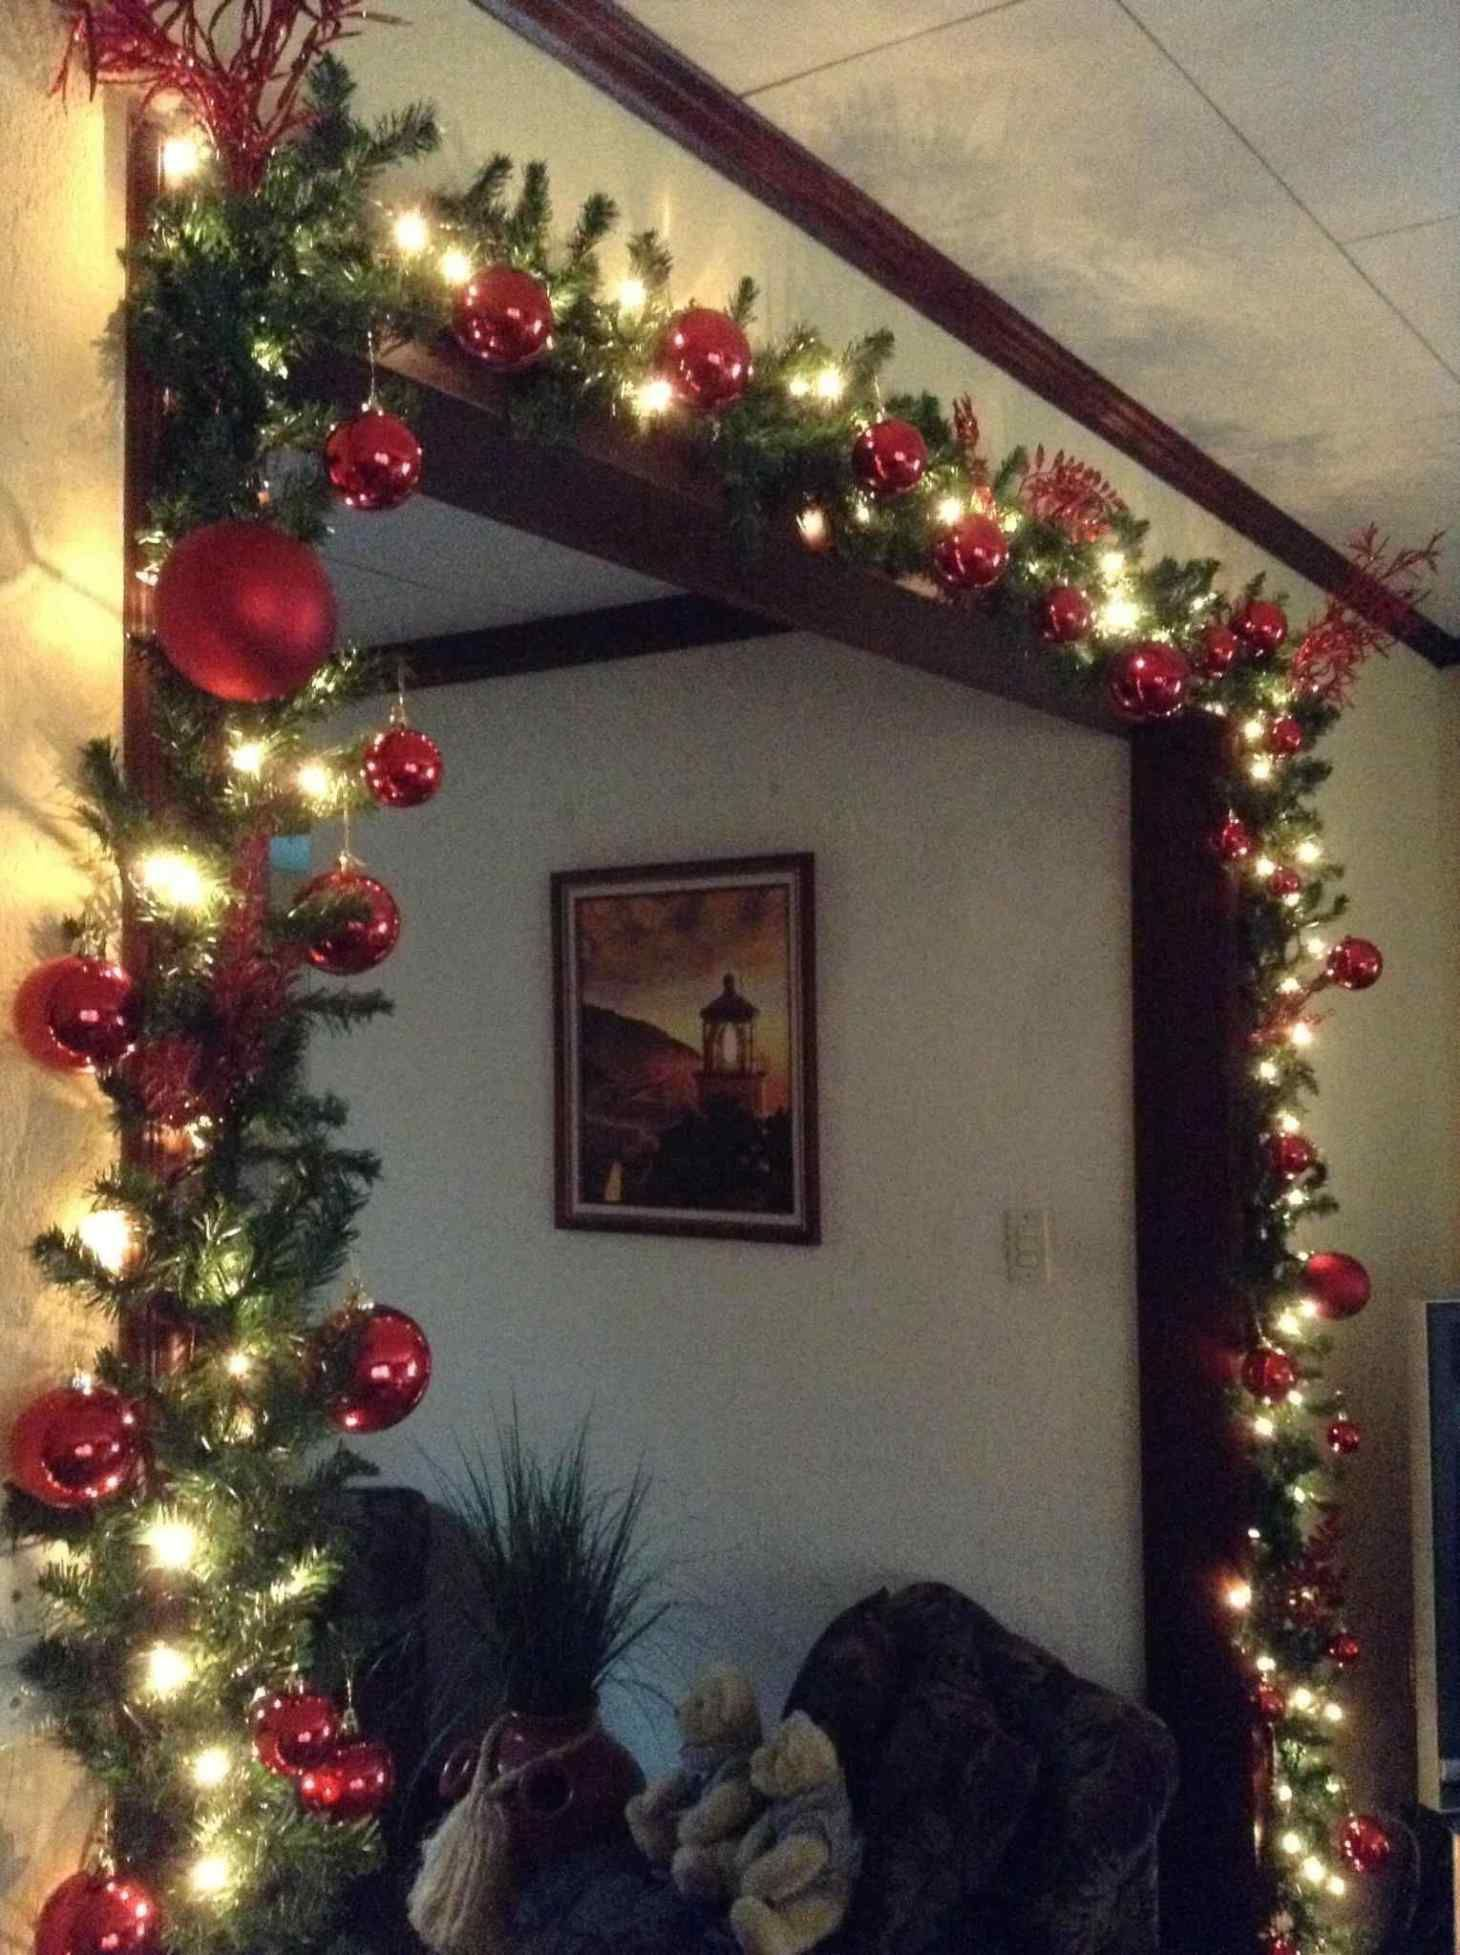 Archway Christmas Decorations Seasons Easy Winter Holiday